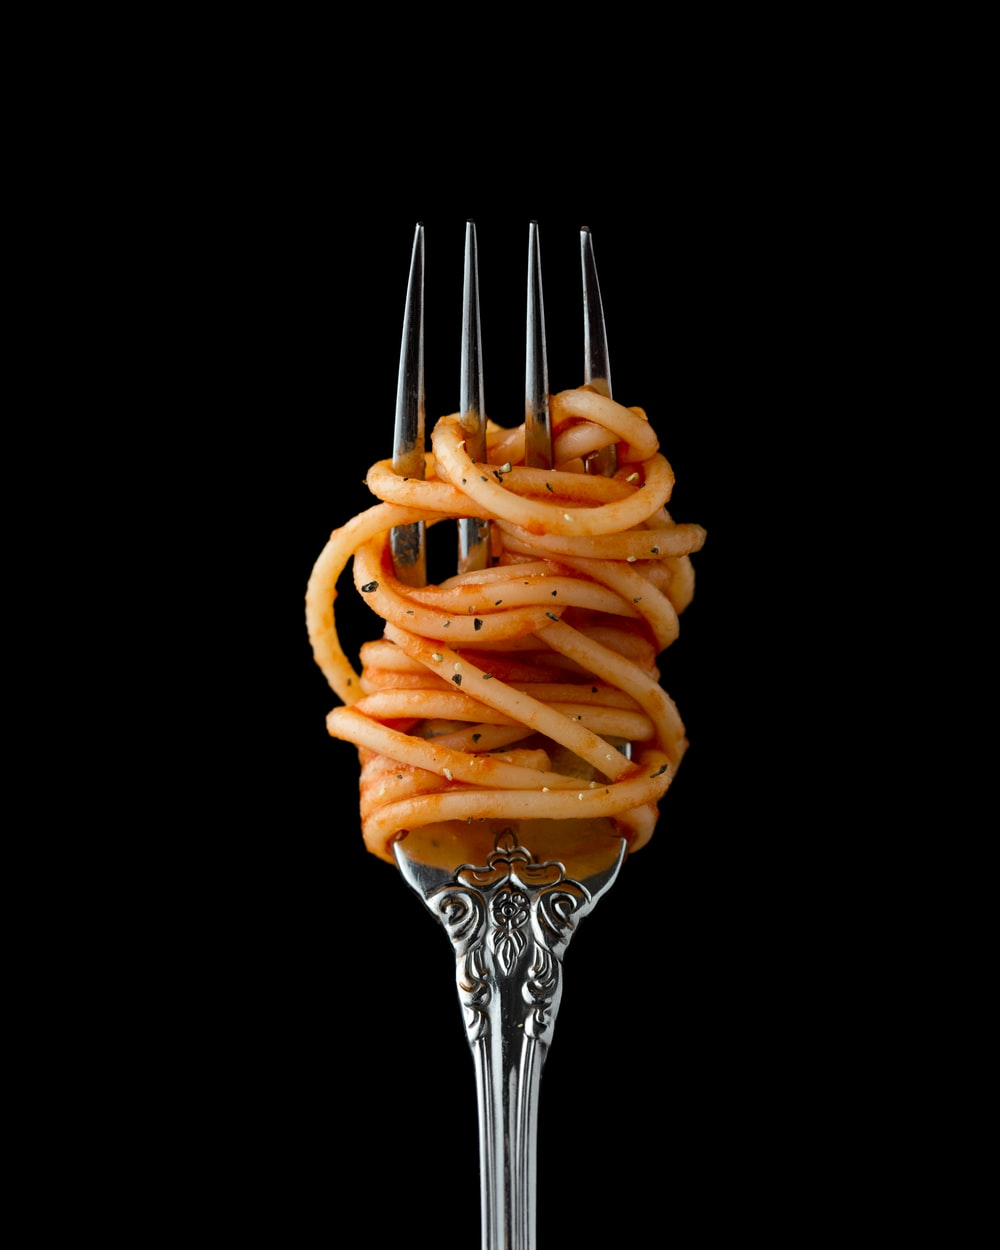 fork with spaghetti